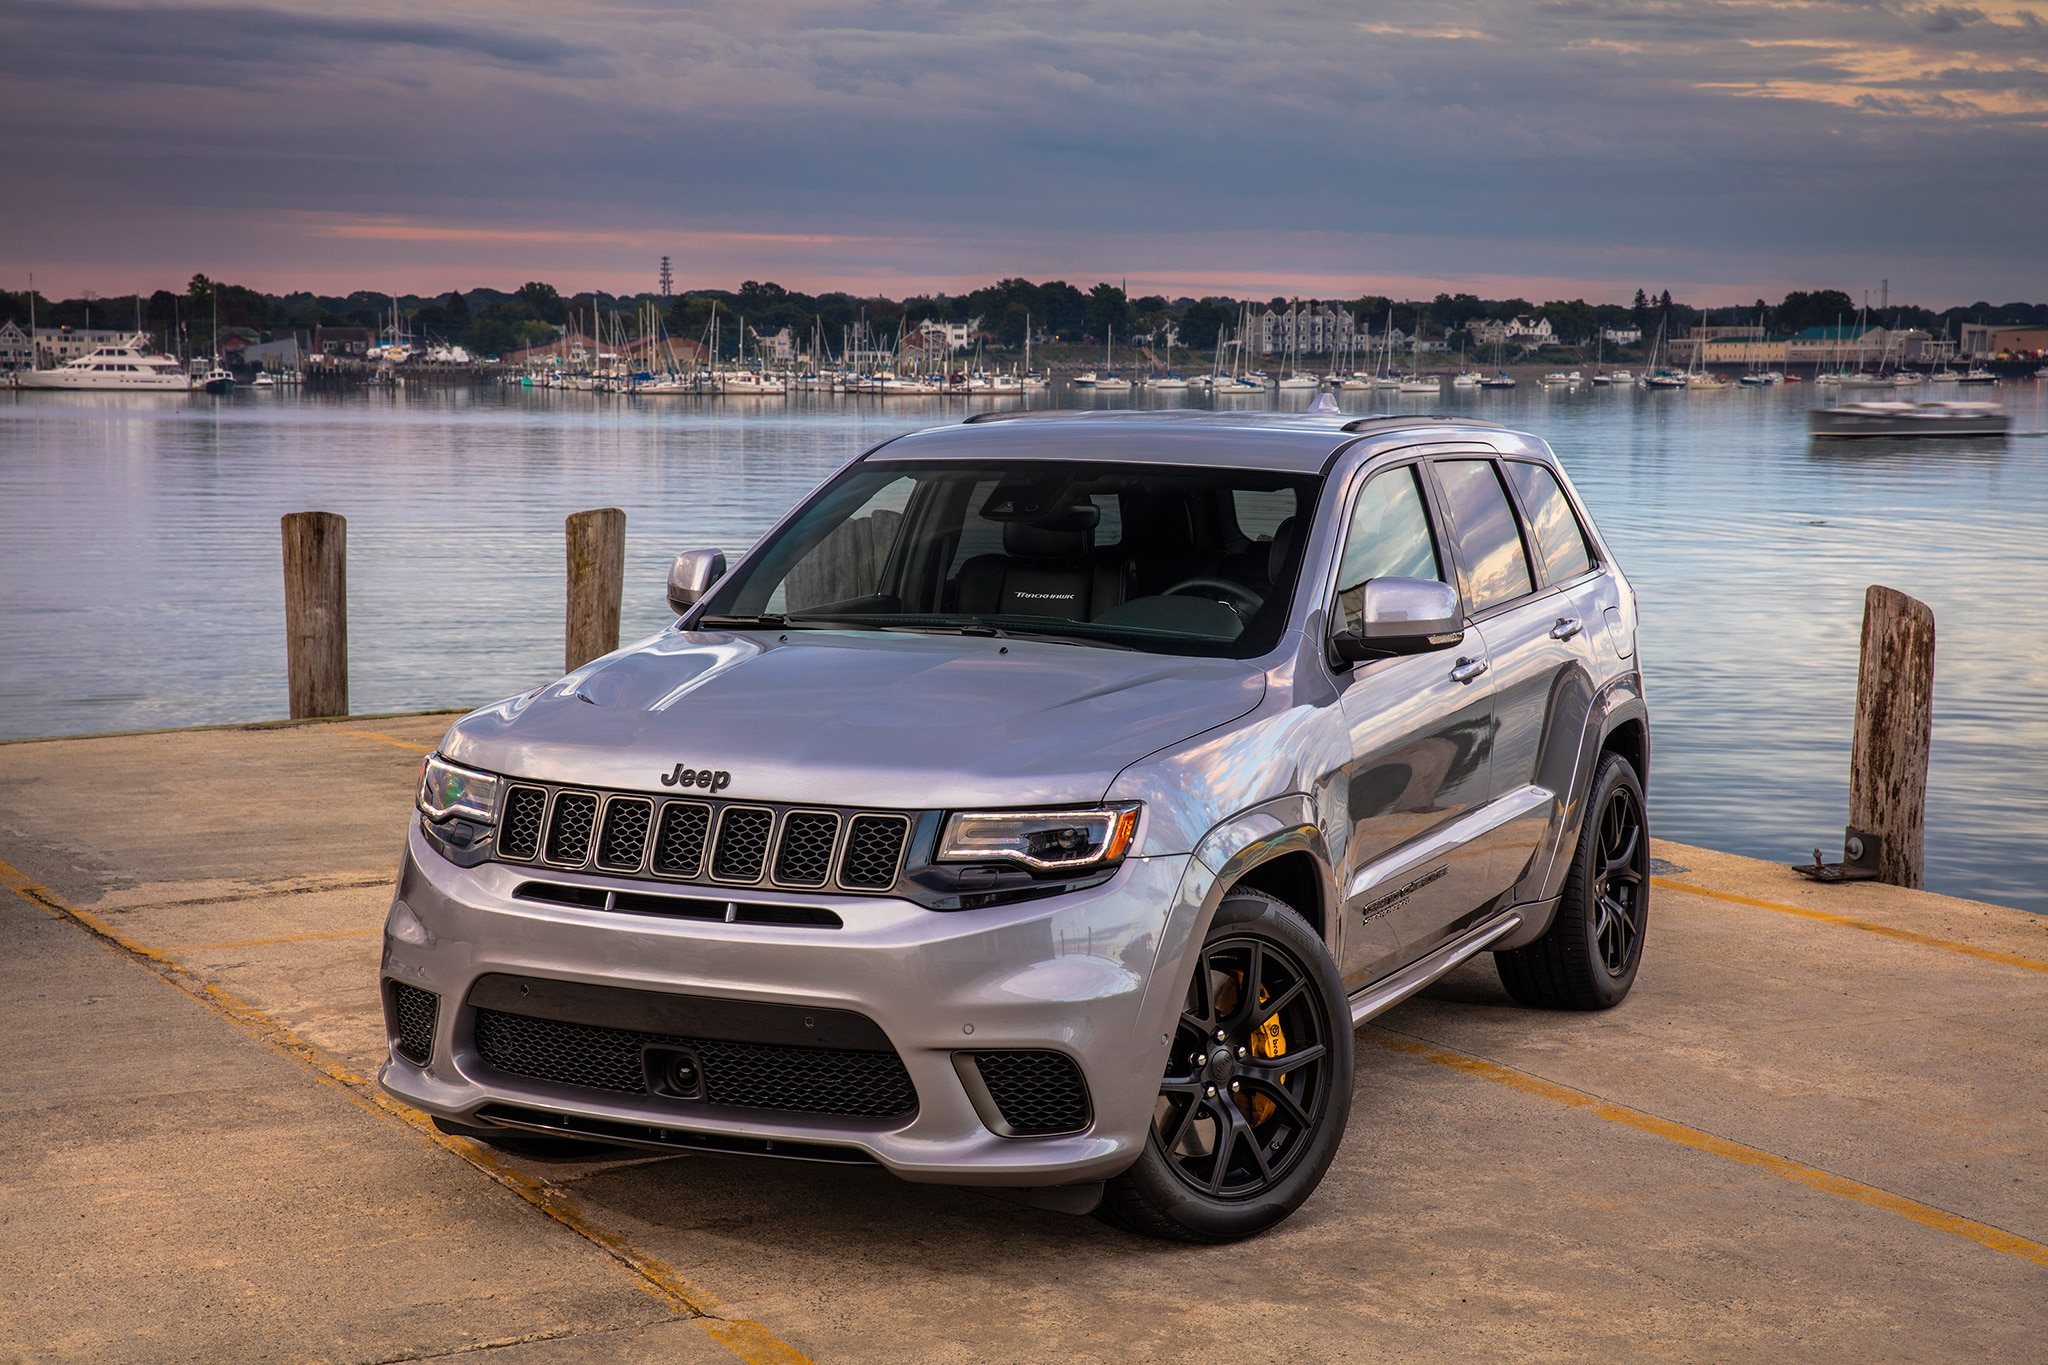 2018 Trackhawk Jeep >> 2018 Jeep Grand Cherokee Trackhawk First Drive Review Automobile